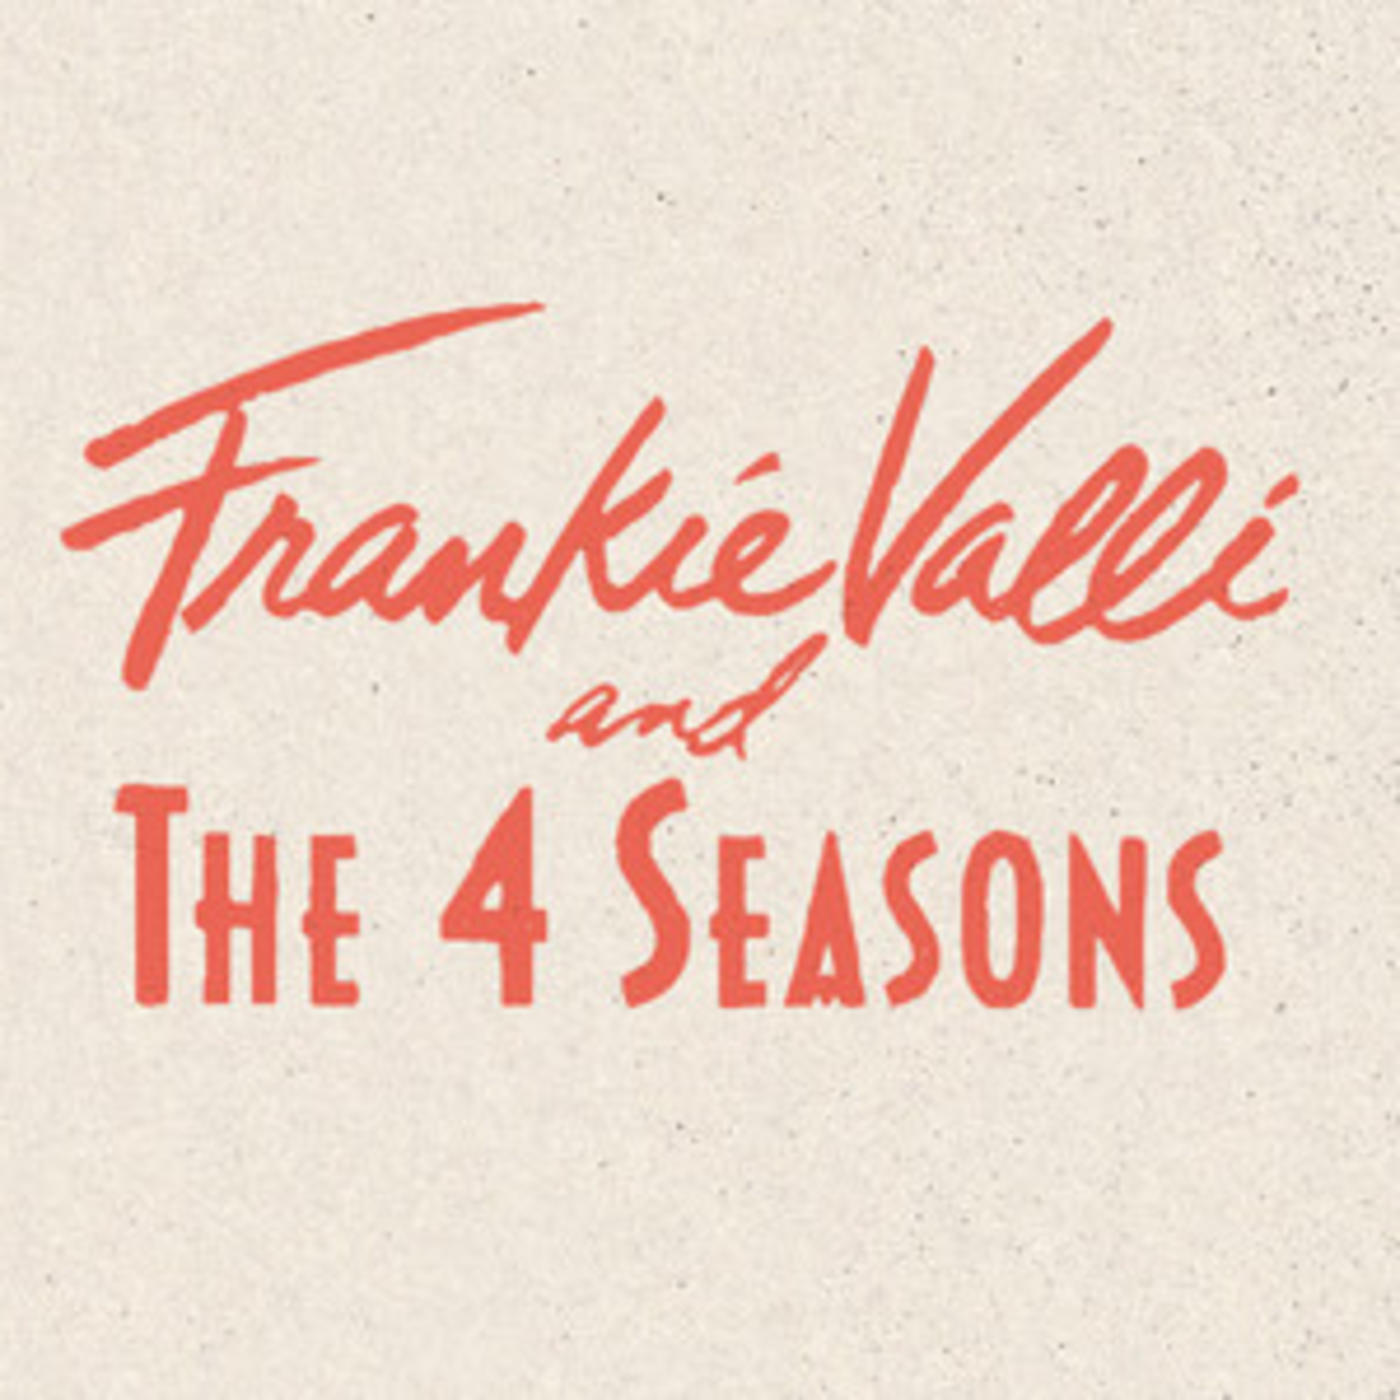 Frankie Valli & The 4 Seasons - The Playlist - December, 1963 (Oh What A Night), Sherry, Beggin'